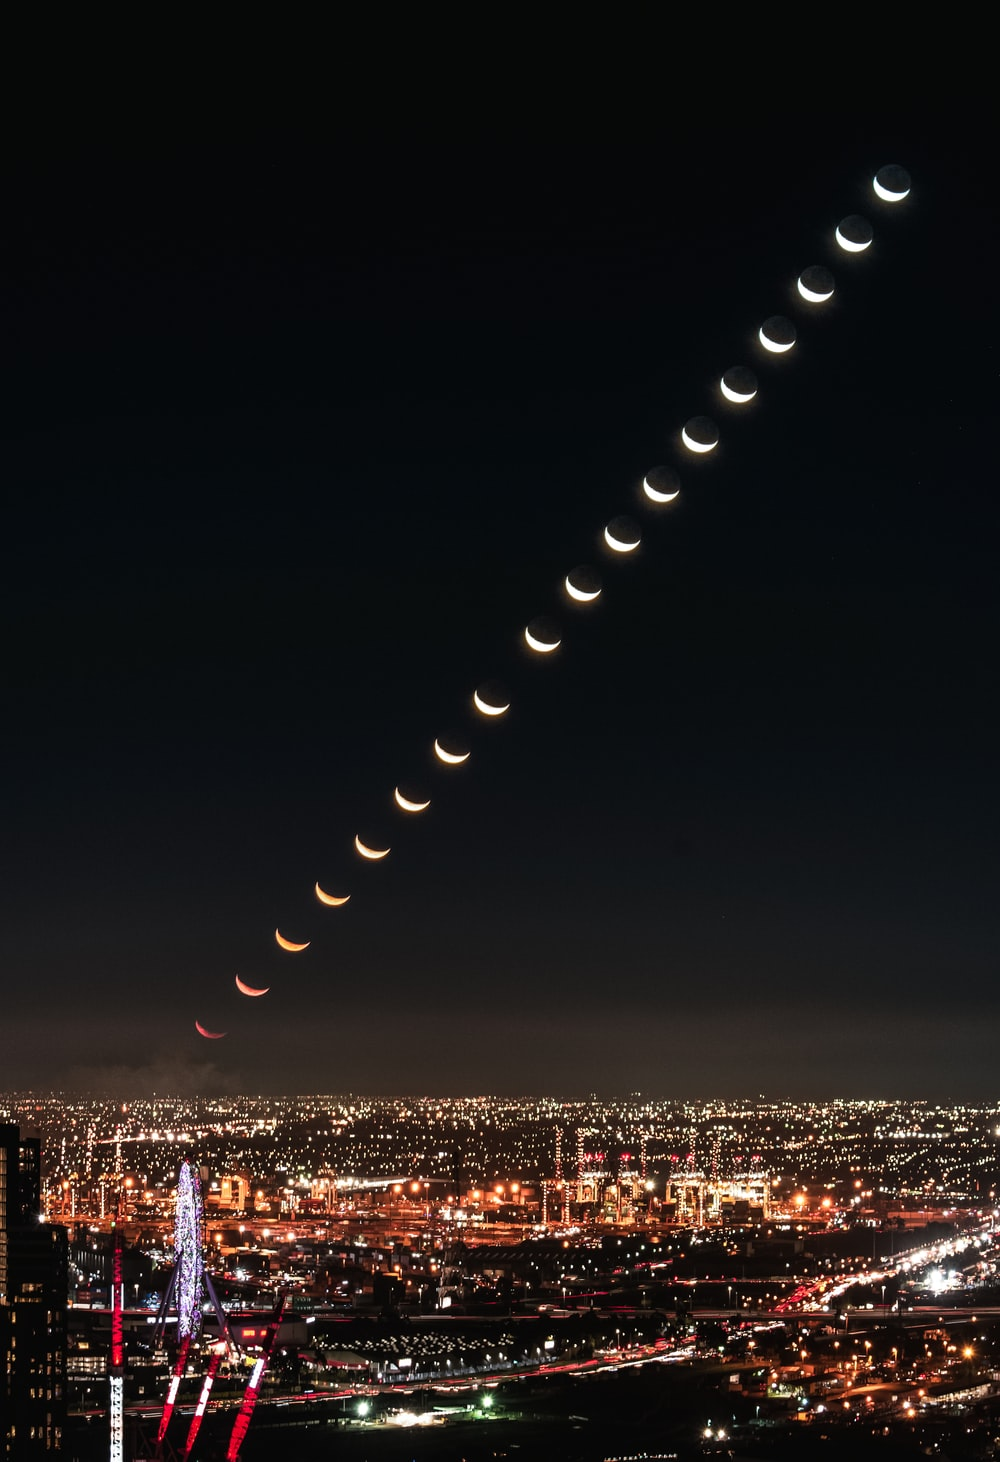 timelapse photo of moon at night